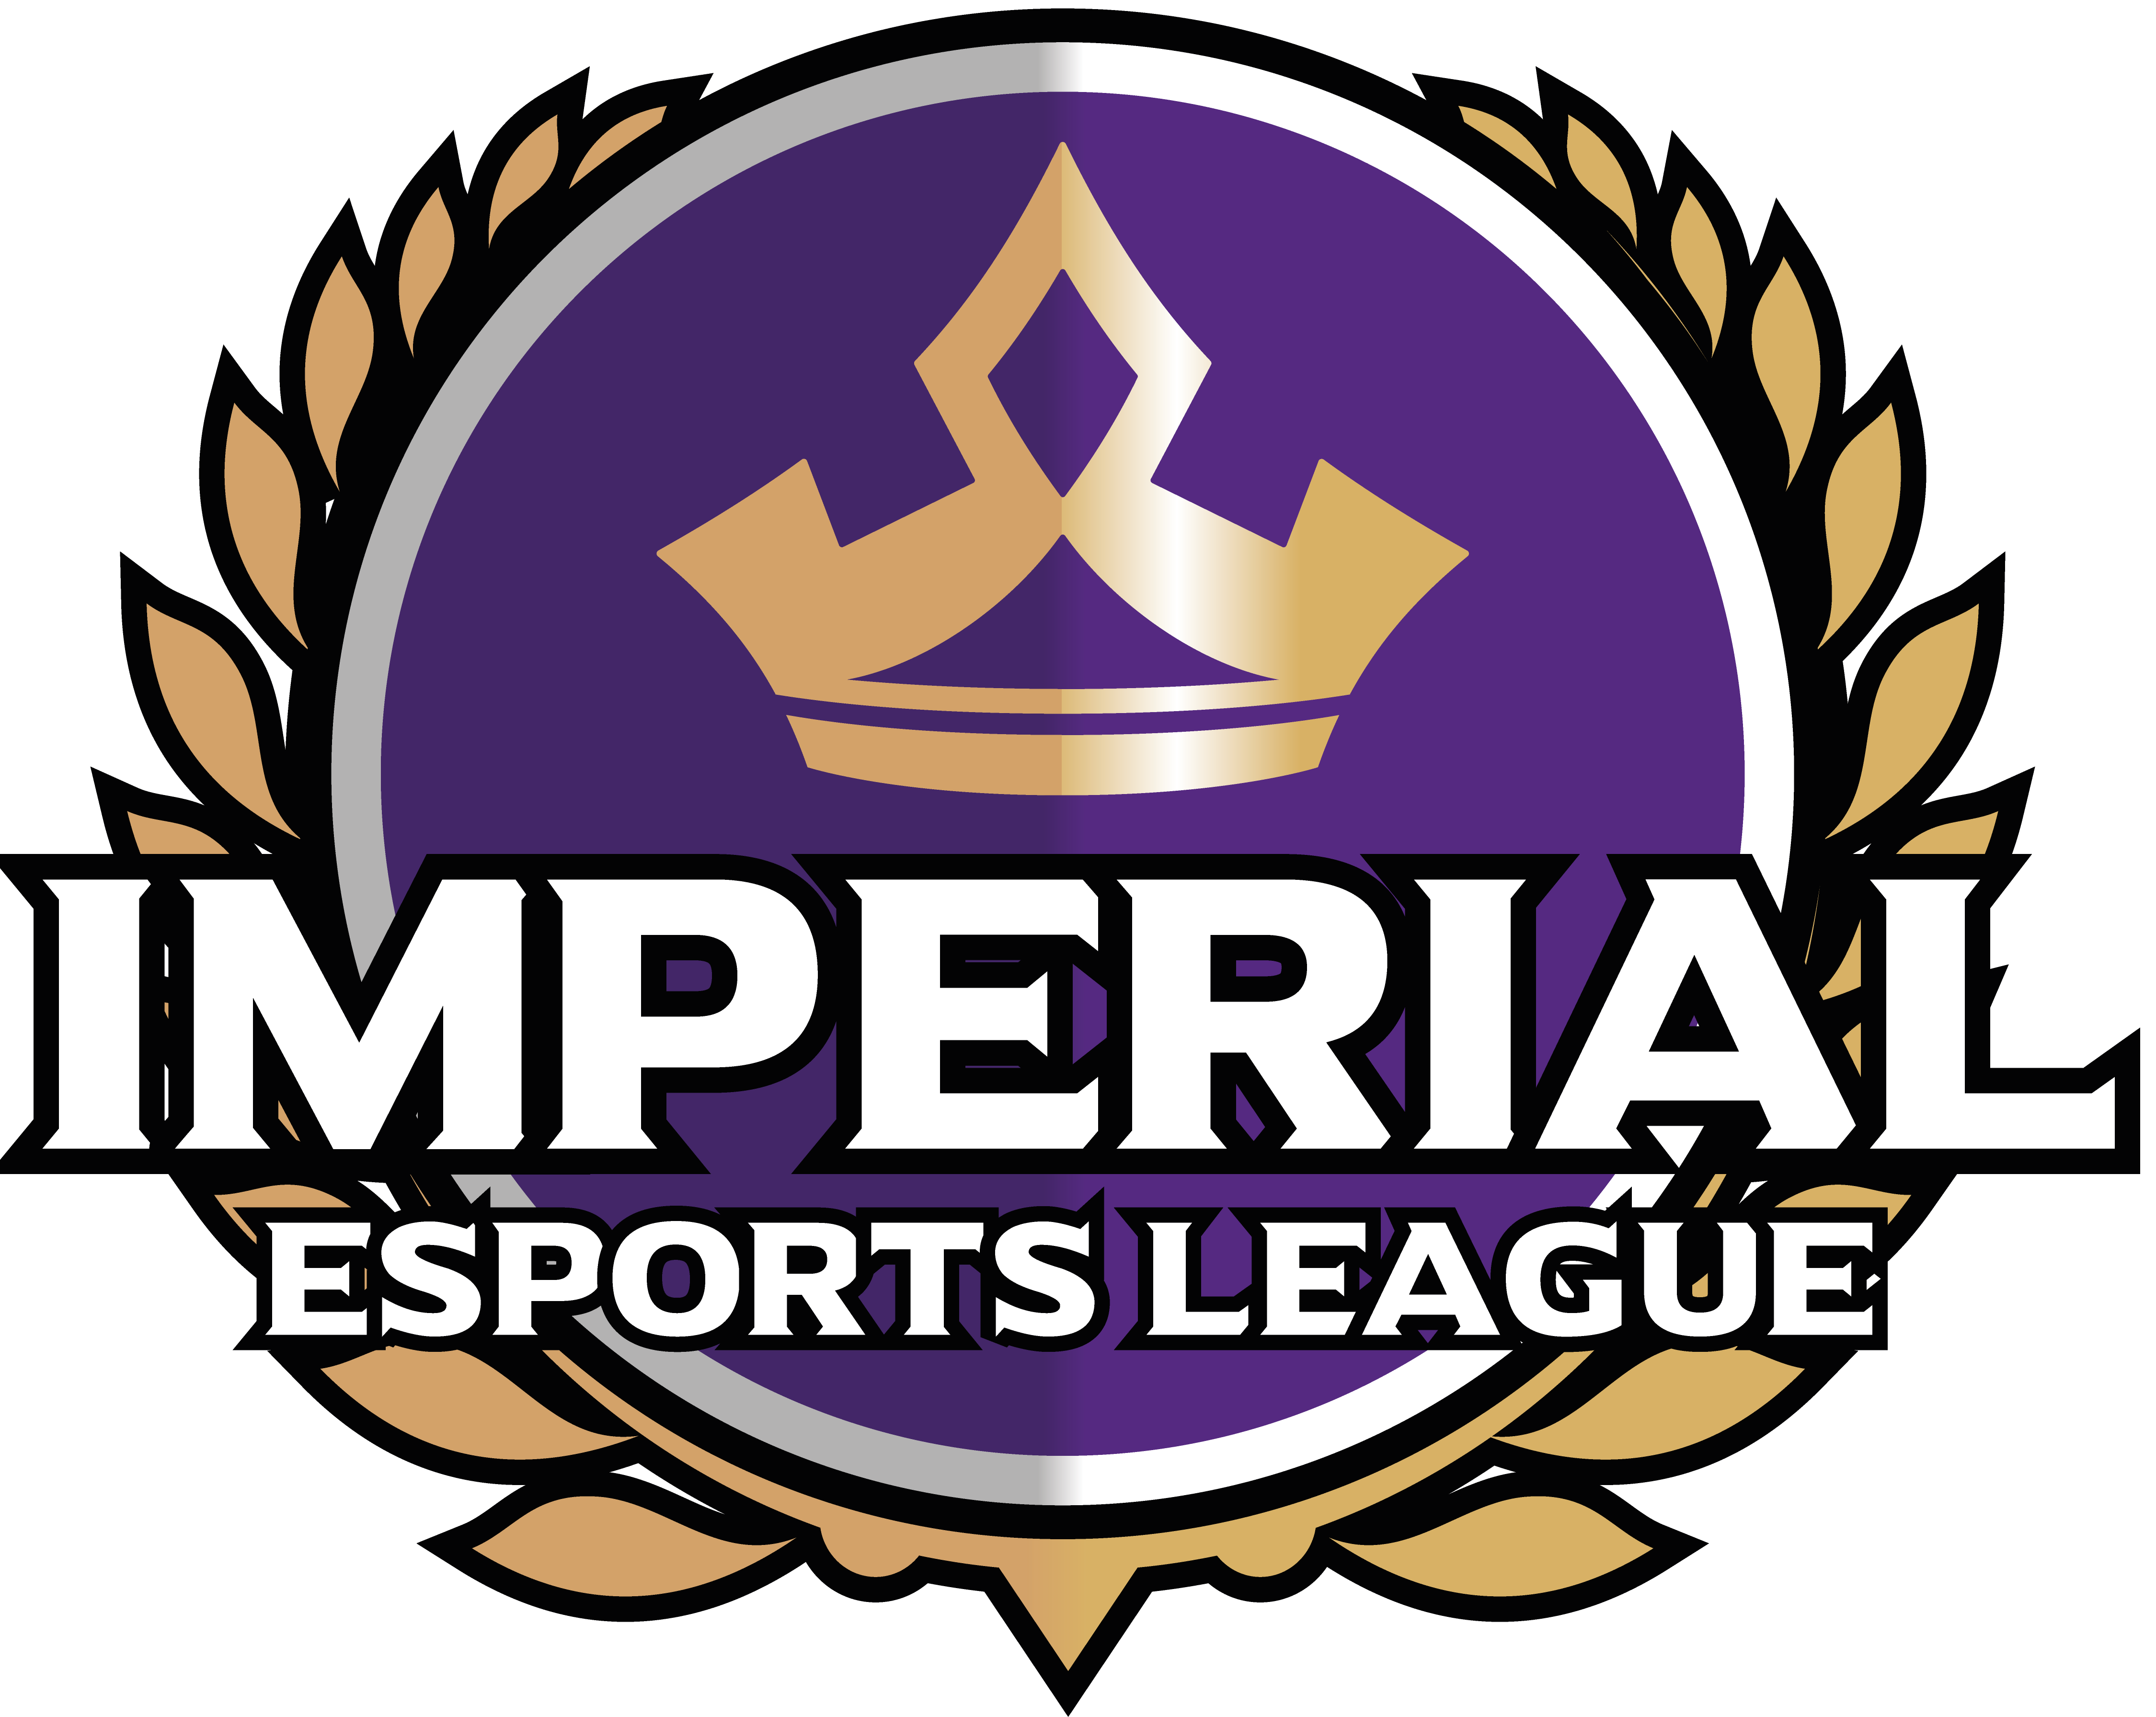 Imperial Esports League Logo